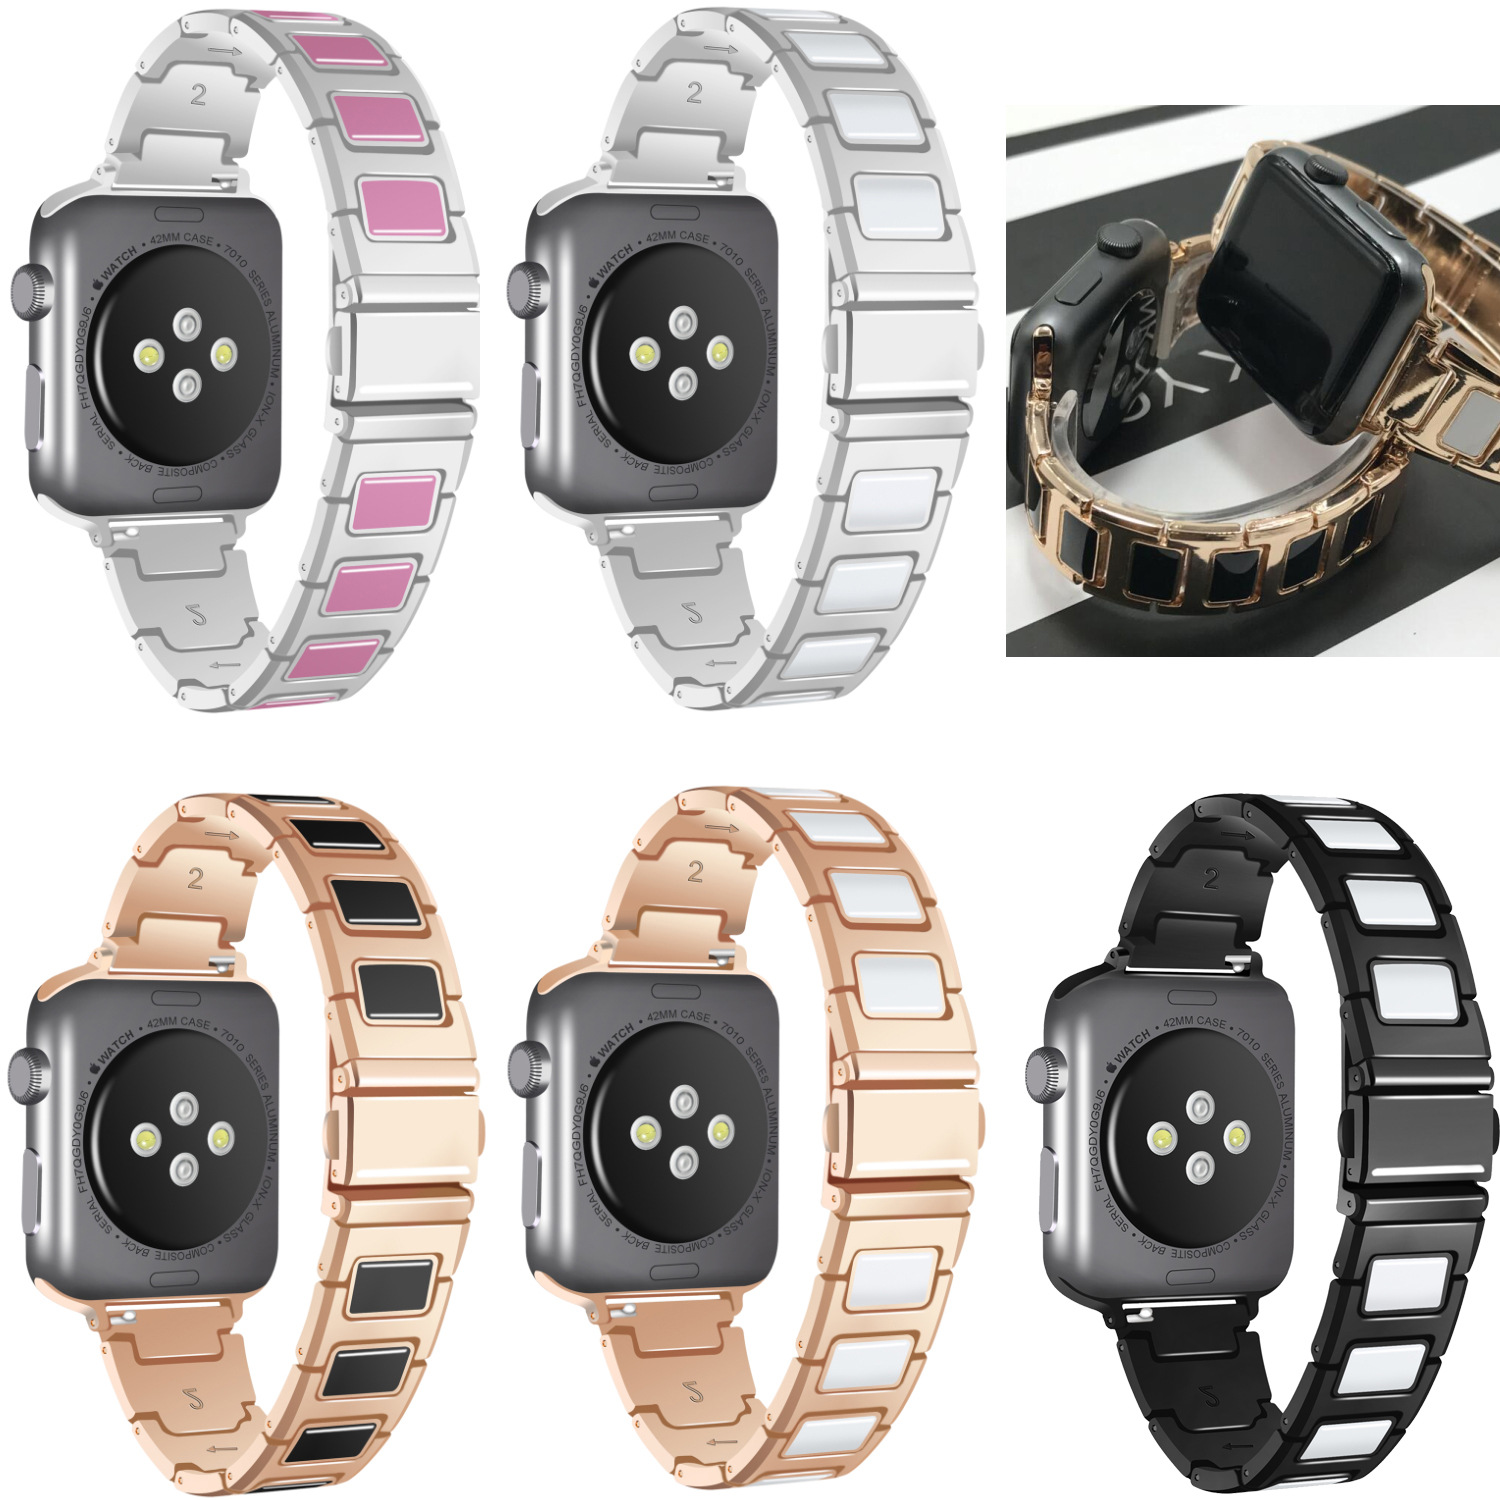 BOX-W Compatible for Apple Watch Band 38mm,42mm Replacement Stainless Steel & Ceramic Bracelet Straps Compatible for iWatch4 3